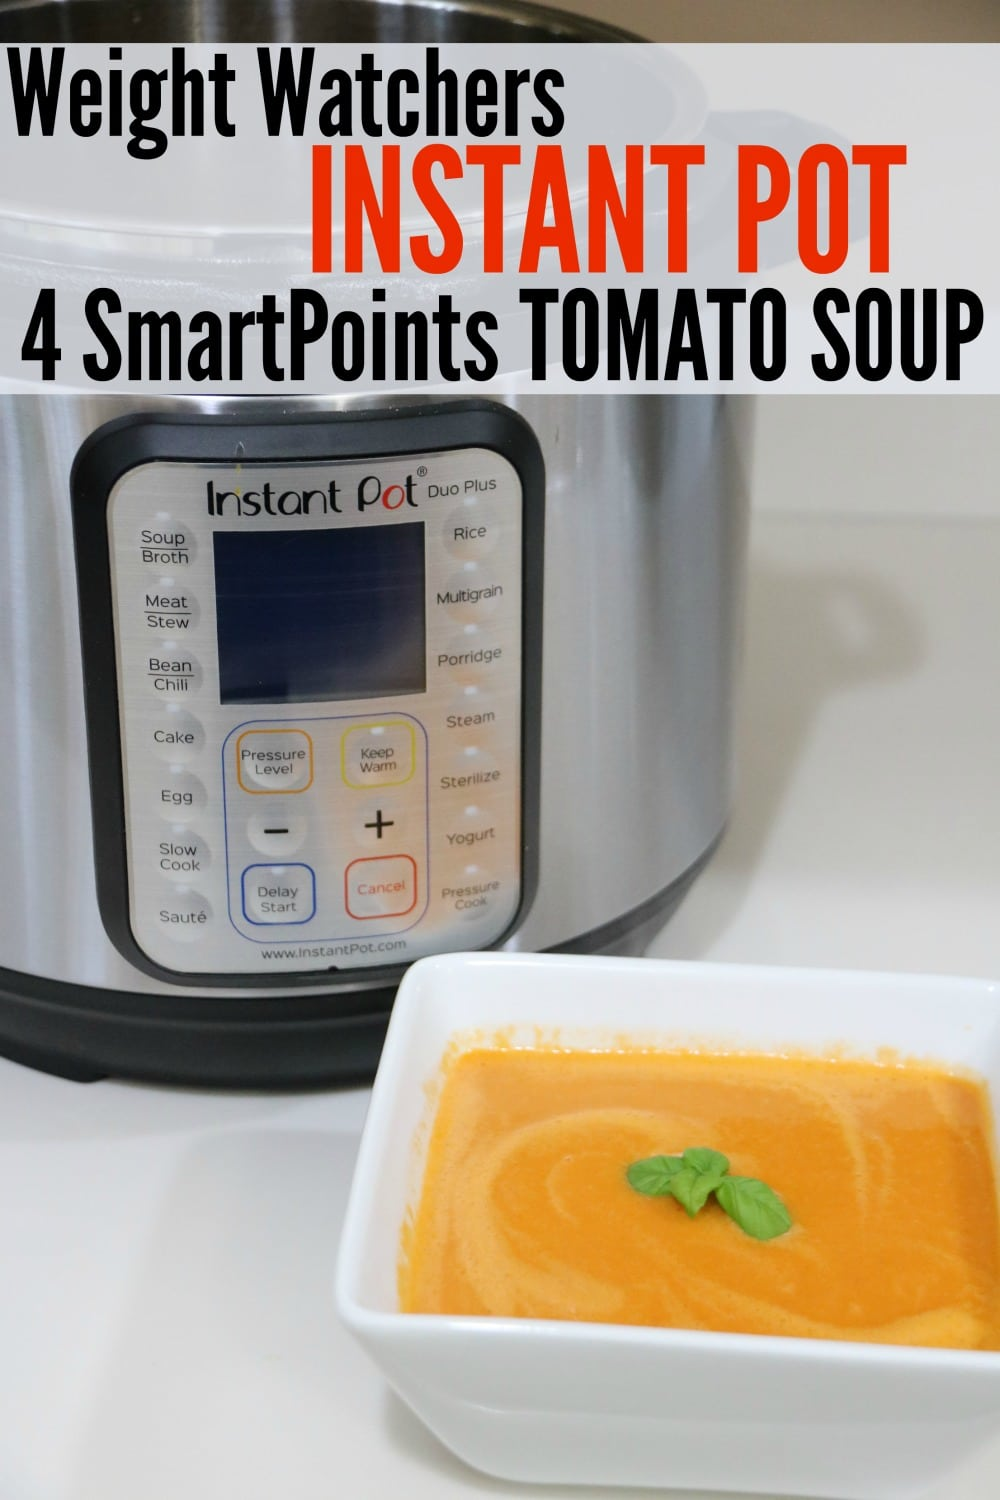 4 SmartPoints Tomato Soup Instant Pot